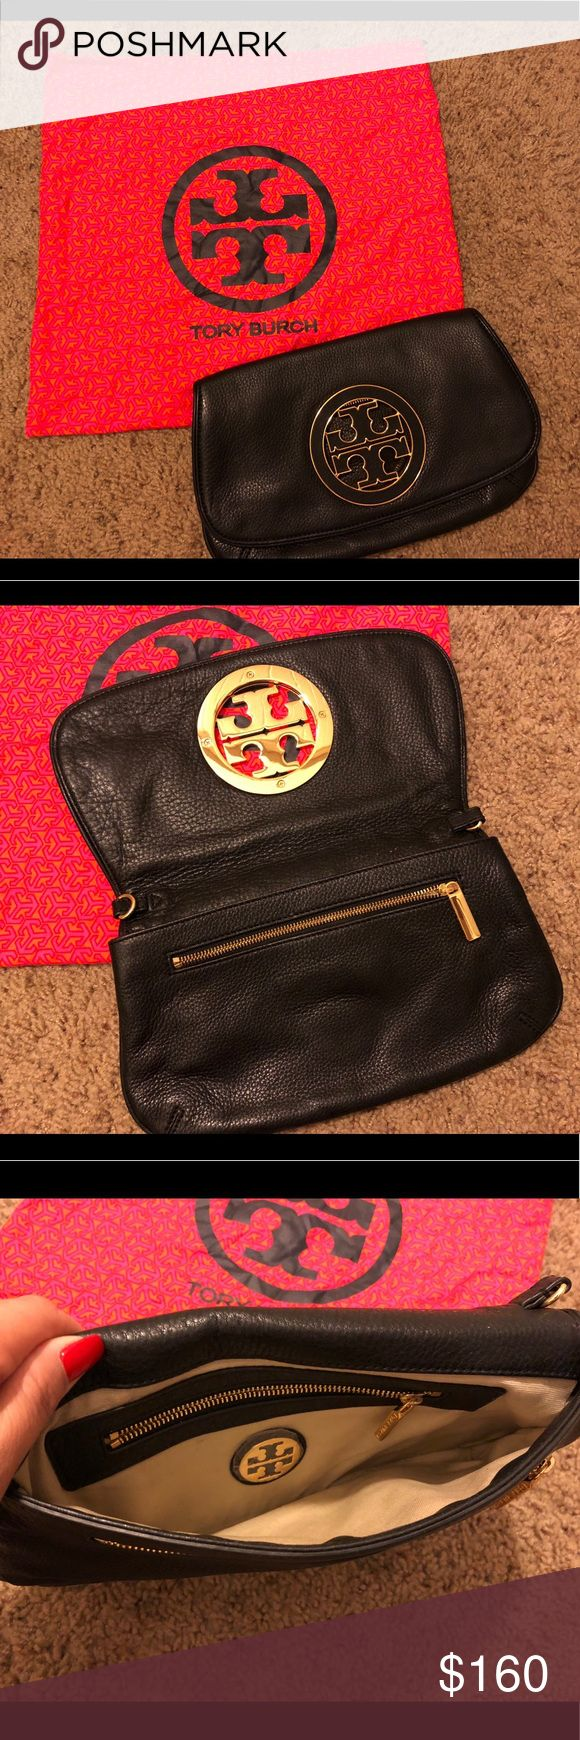 """Tory Burch Amanda Logo Clutch Clutch is in great condition only used a couple times.   Defined by a clean, versatile shape, this Tory Burch Amanda Crossbody is the very definition of smart style. Designed in pebbled leather and a large medallion on the flap , this crossbody stores on-the-go essentials.   Features pebbled leather Imported Made of pebbled leather. Approx. 11 1/2"""" x 8"""" x 1 1/2"""". Long strap for shoulder or crossbody wear. Magnetic closure. Interior zip pocket. Fabric lining…"""